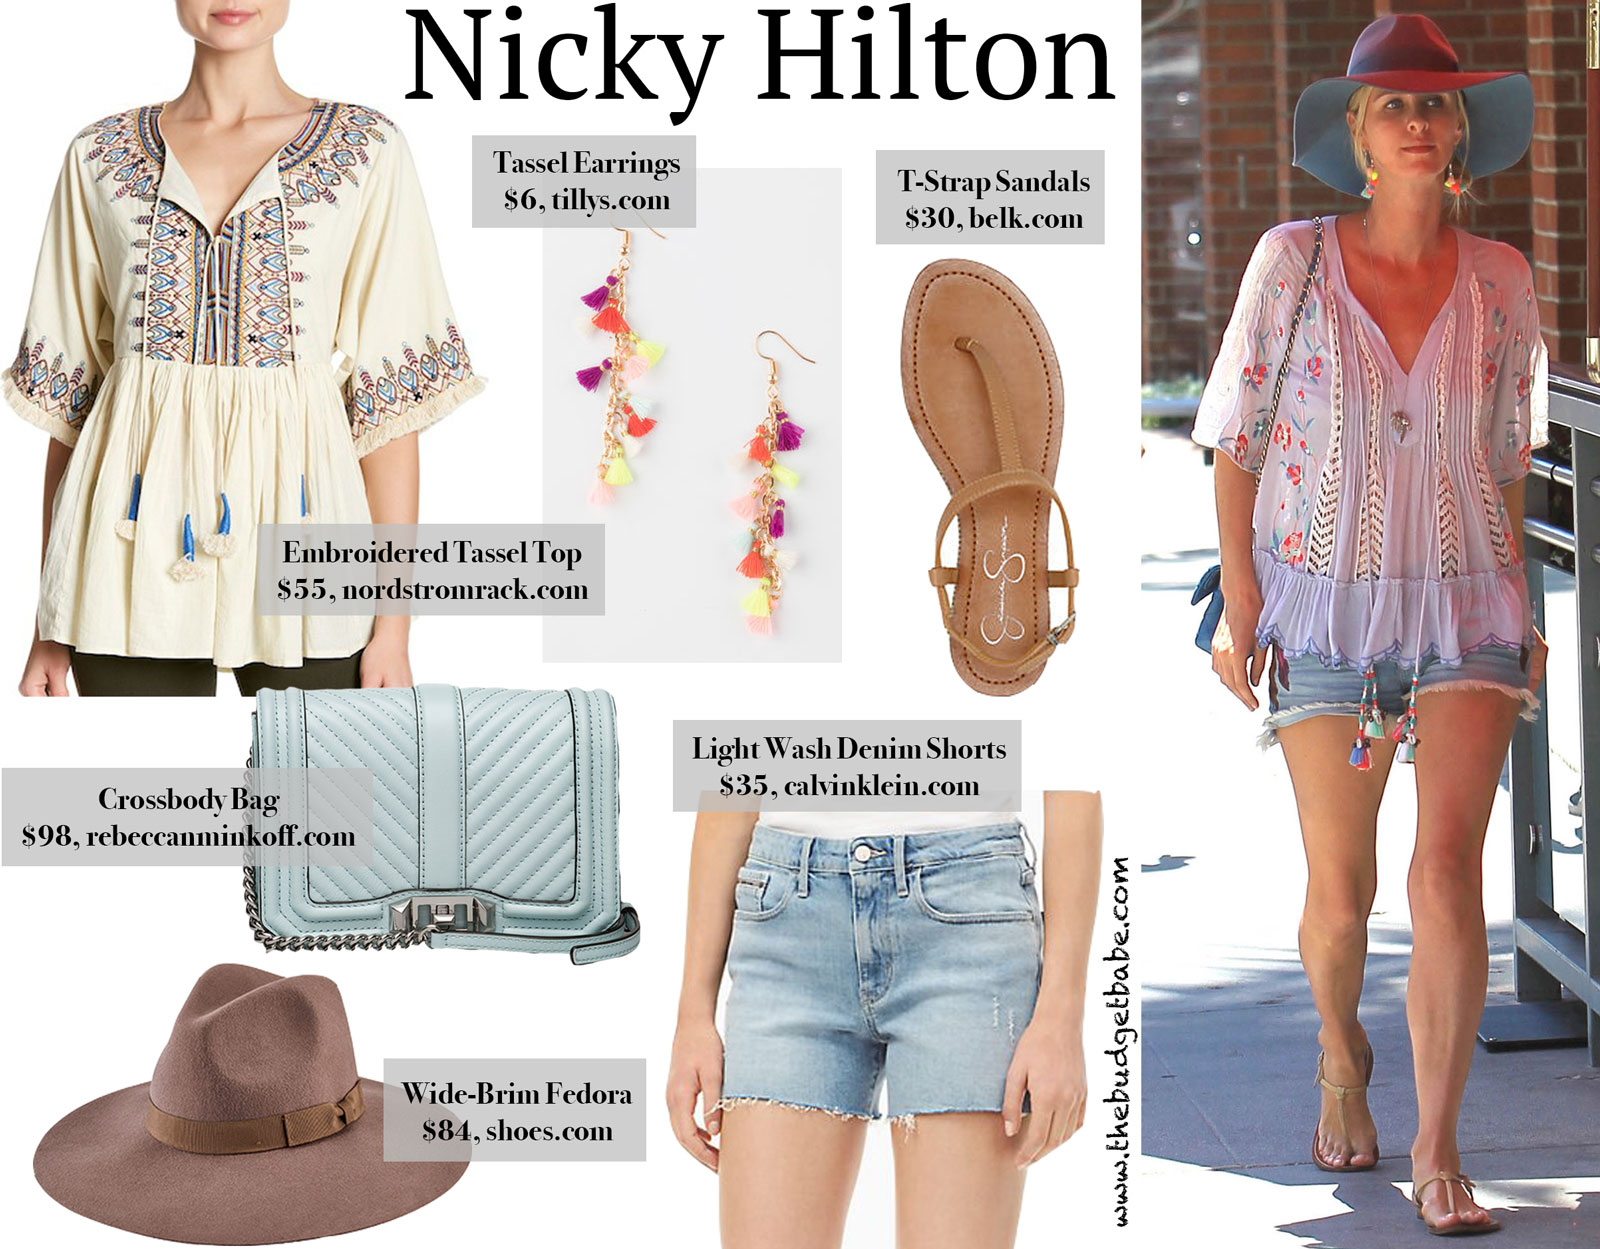 Nicky Hilton Embroidered Tassel Top Look for Less